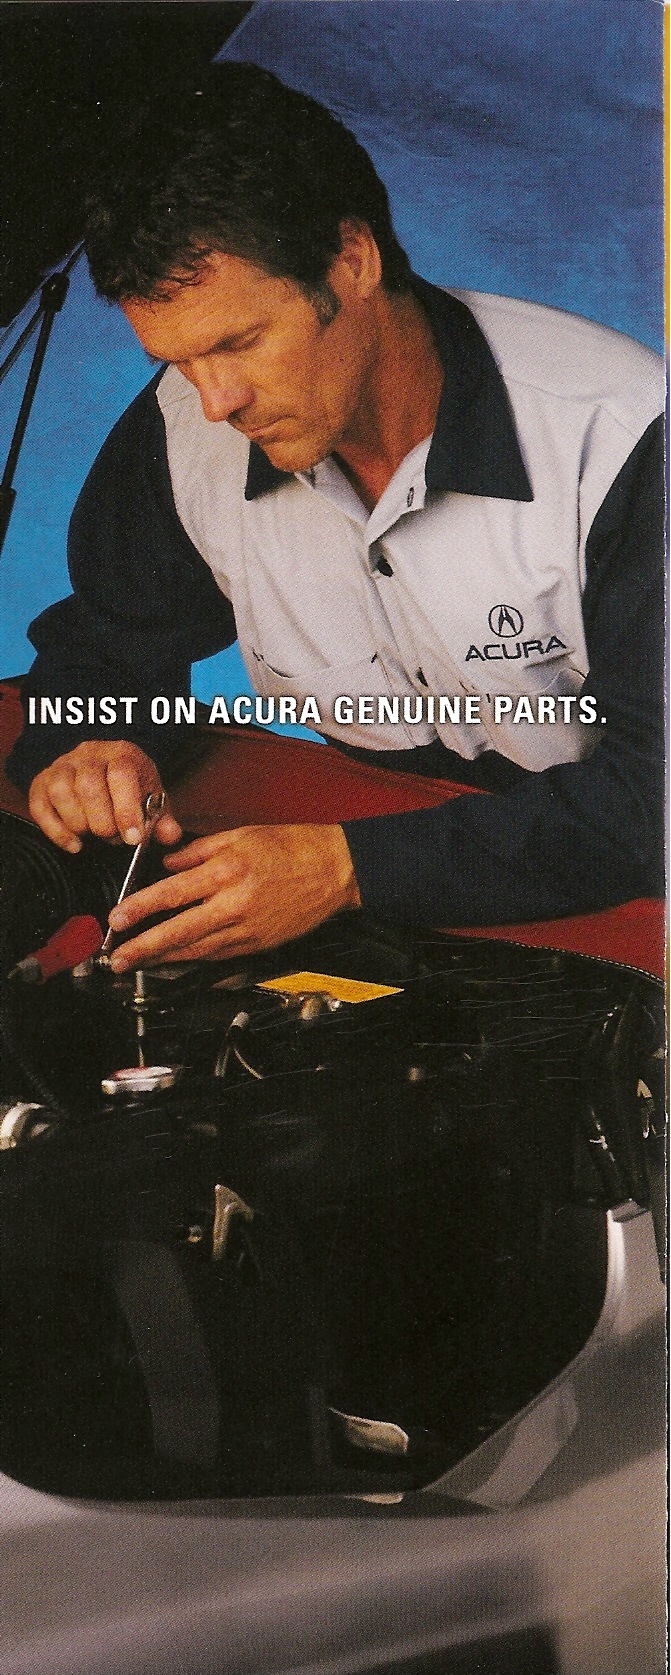 Mazda Dealers In Ohio >> Park Auto Group Akron Ohio - NEW and USED Acura, Honda, Mazda and Subaru sales, parts and ...